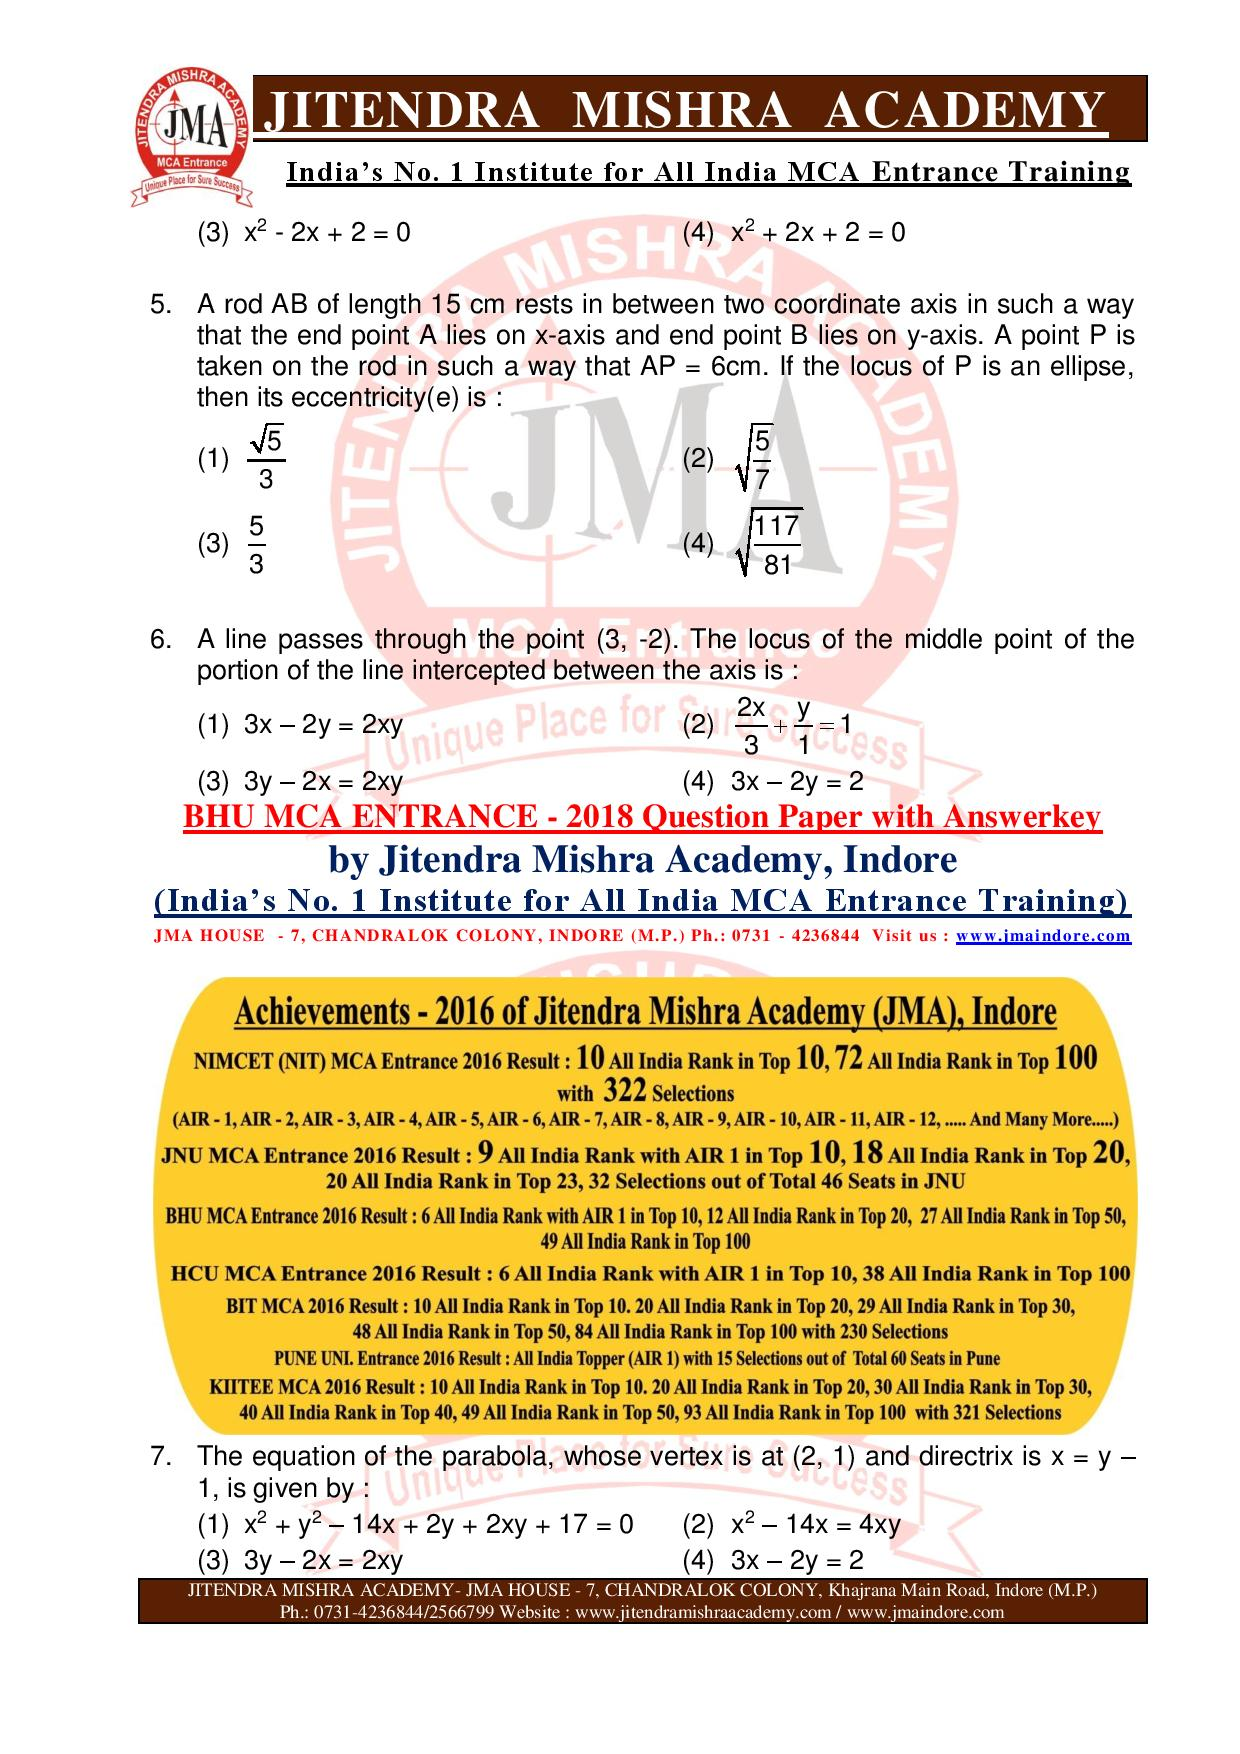 BHU MCA 2018 QUESTION PAPER12-page-002